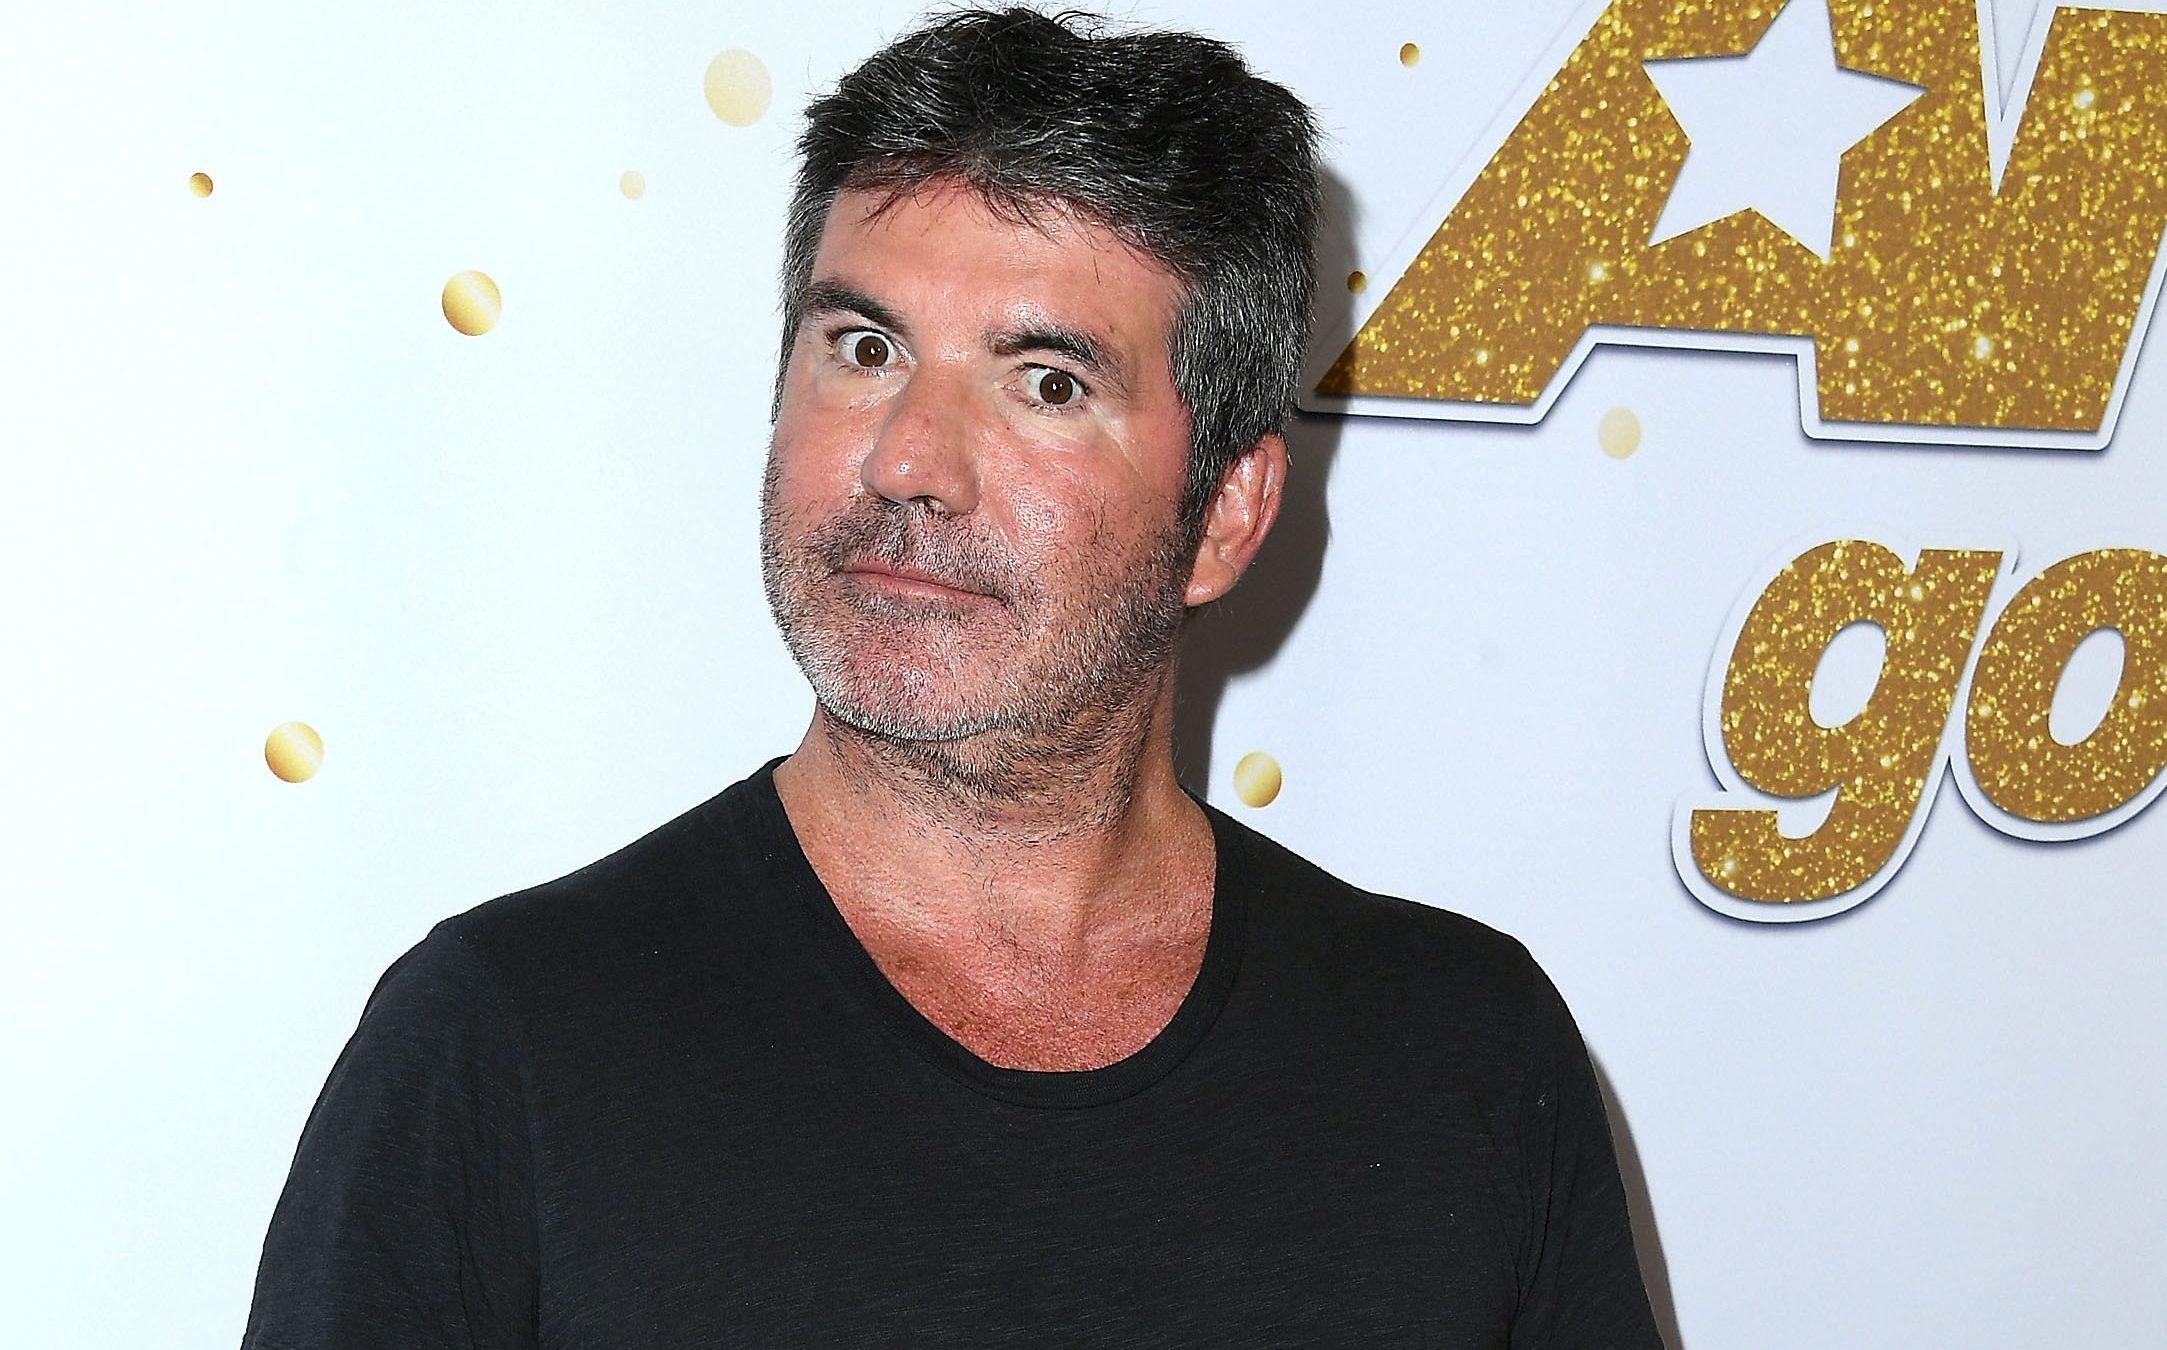 Simon Cowell's £15million London mansion 'haunted by Roman emperor Hadrian's gay lover'